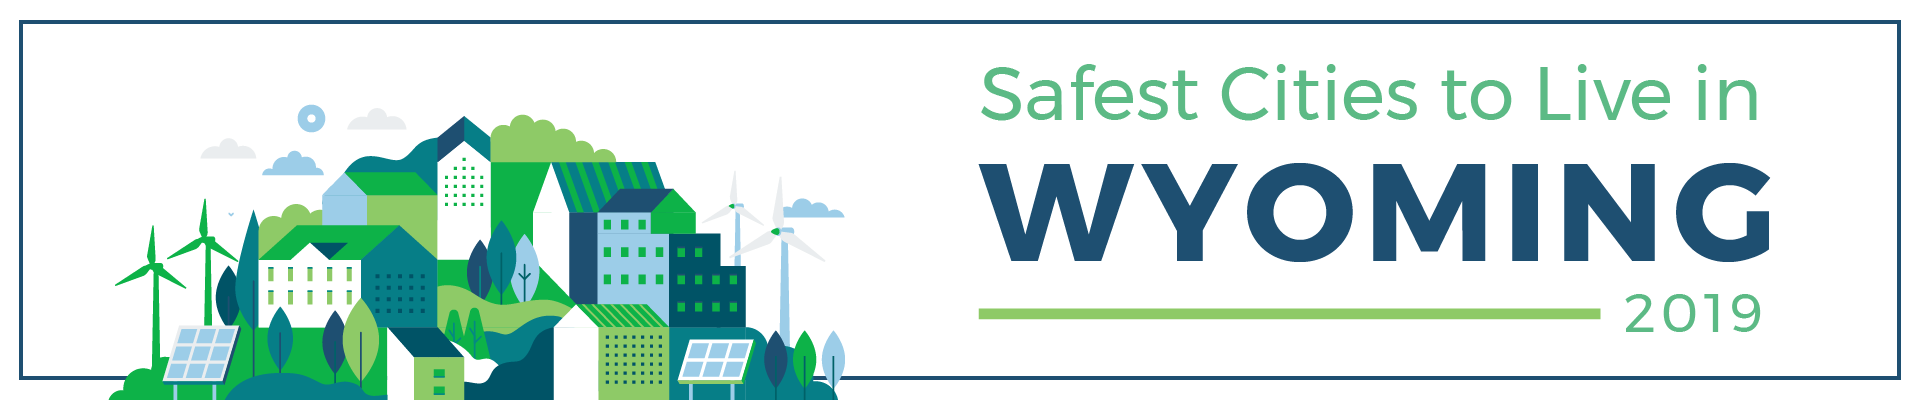 header - safest_cities_wyoming_2019